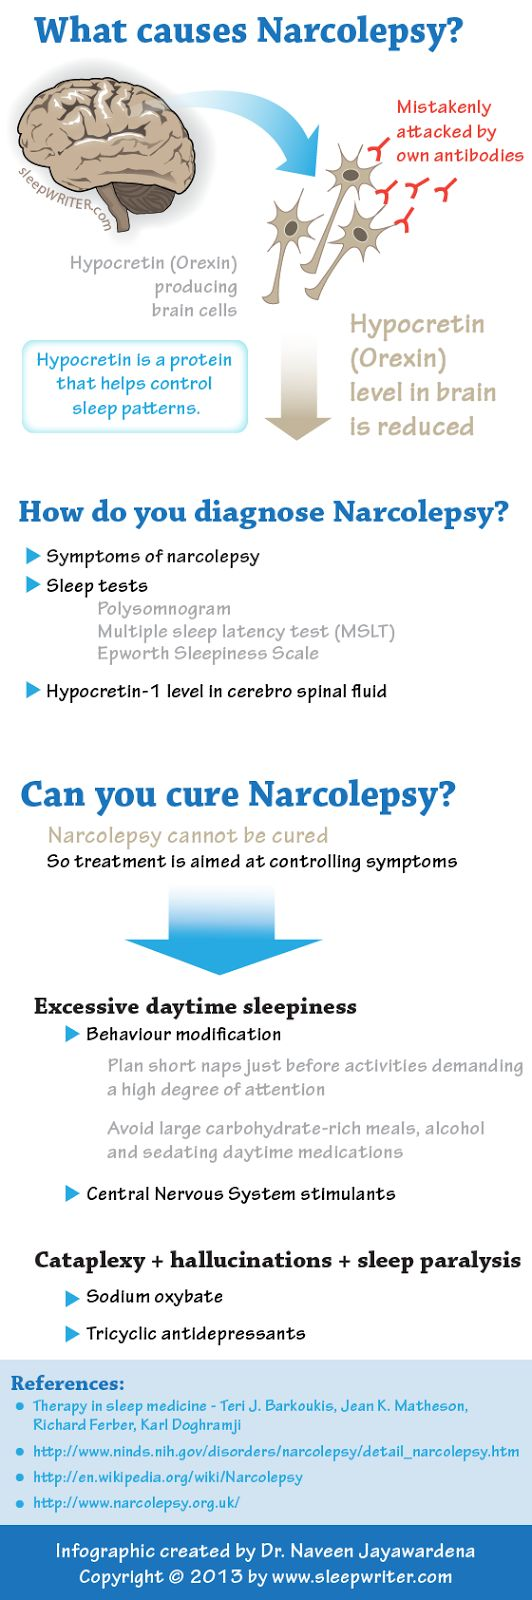 Narcolepsy Sleep Disorders | ... narcolepsy physiology sleep disorder email this blogthis share to